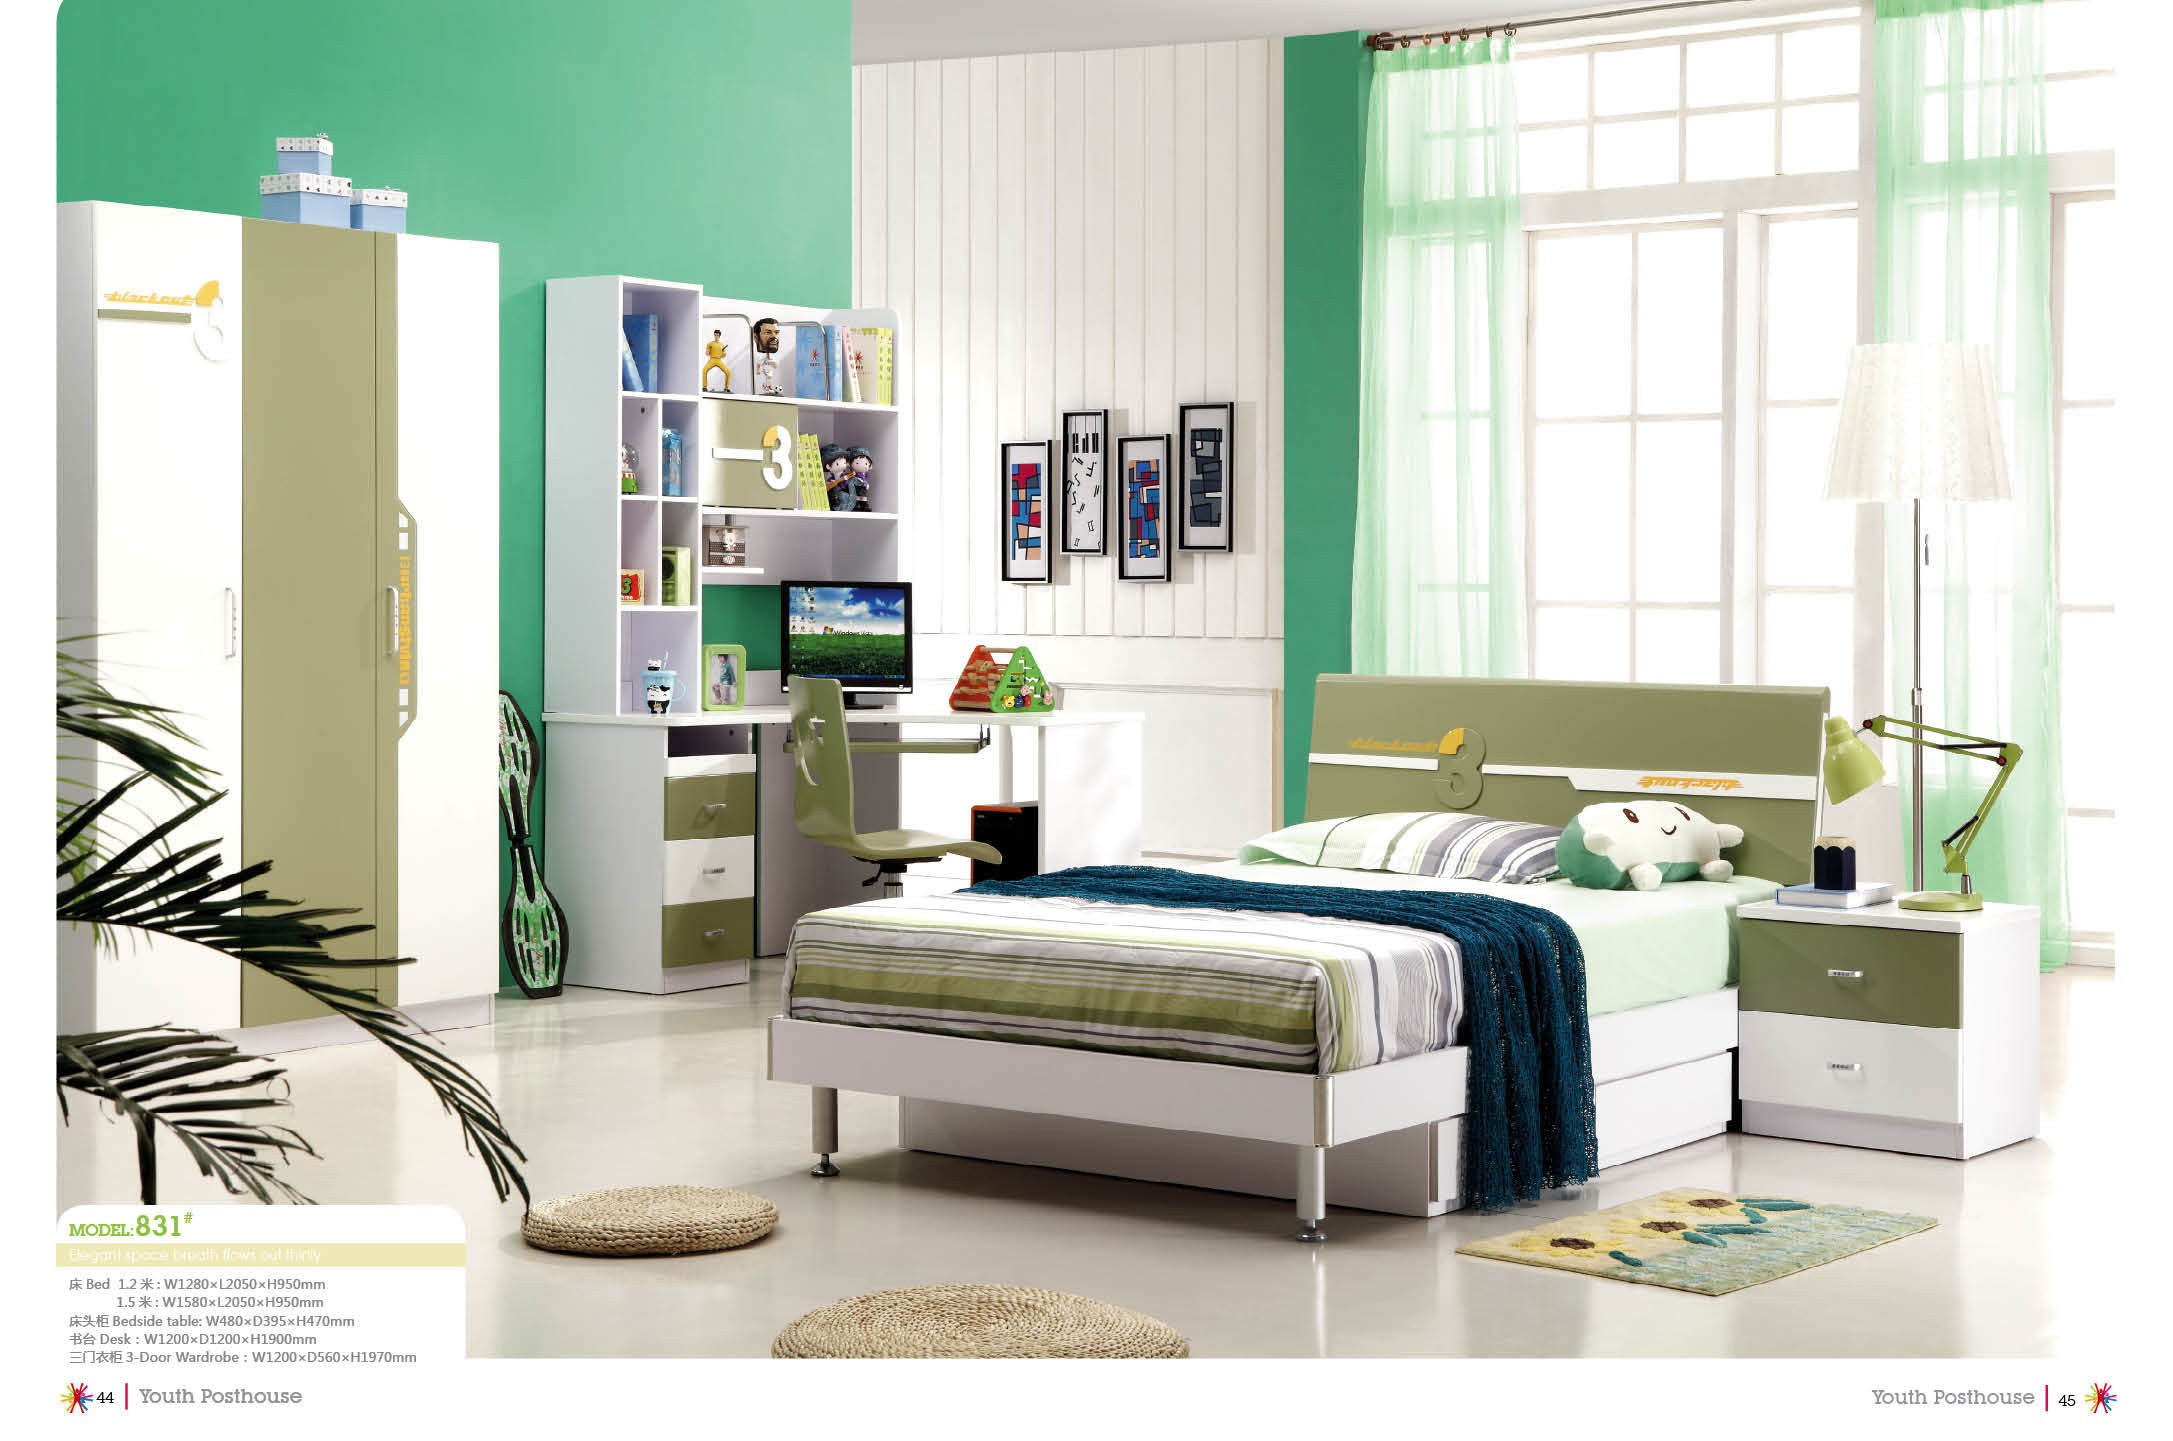 Best ideas about Kids Bedroom Furniture Sets . Save or Pin China Kids Bedroom Set Children Furniture 831 China Now.